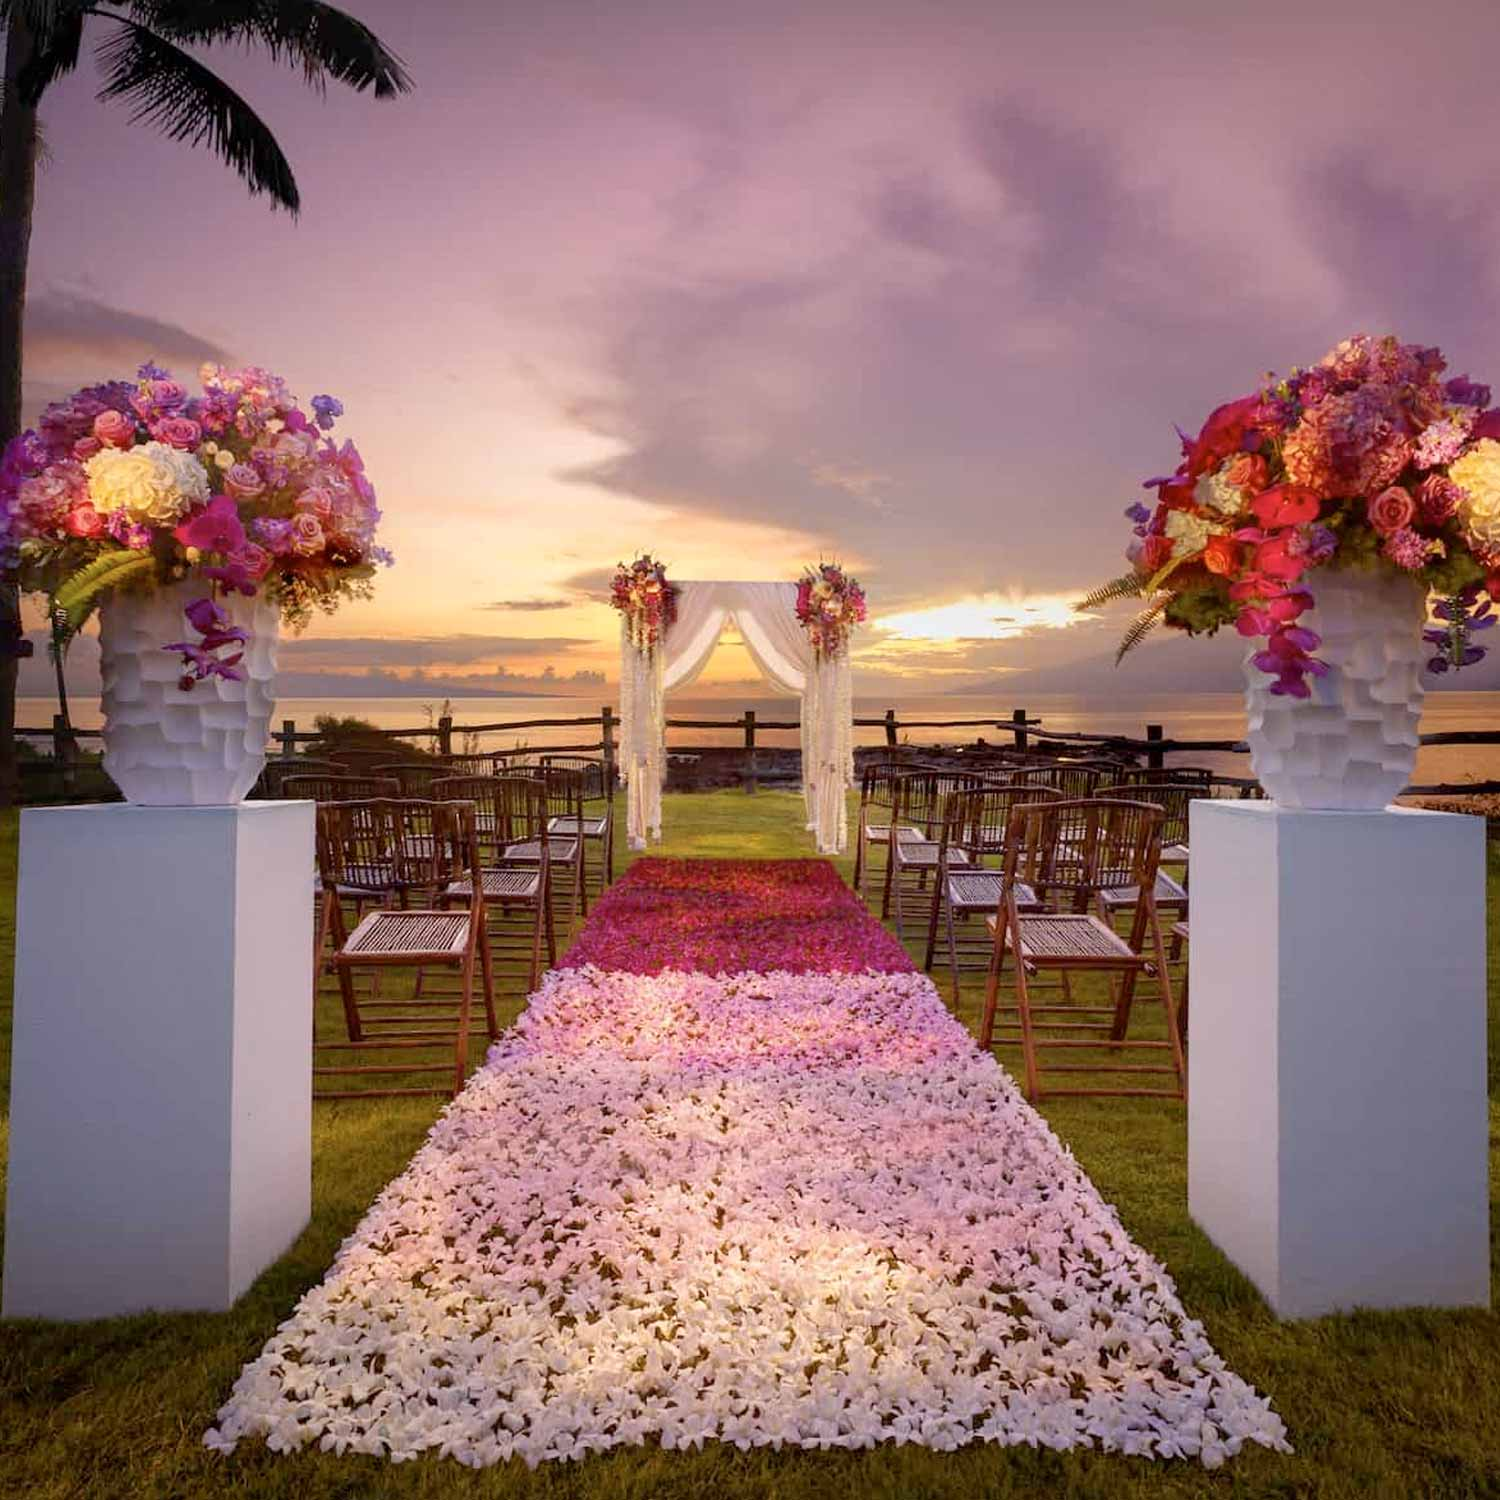 montage-kapalua-wedding-1500-1